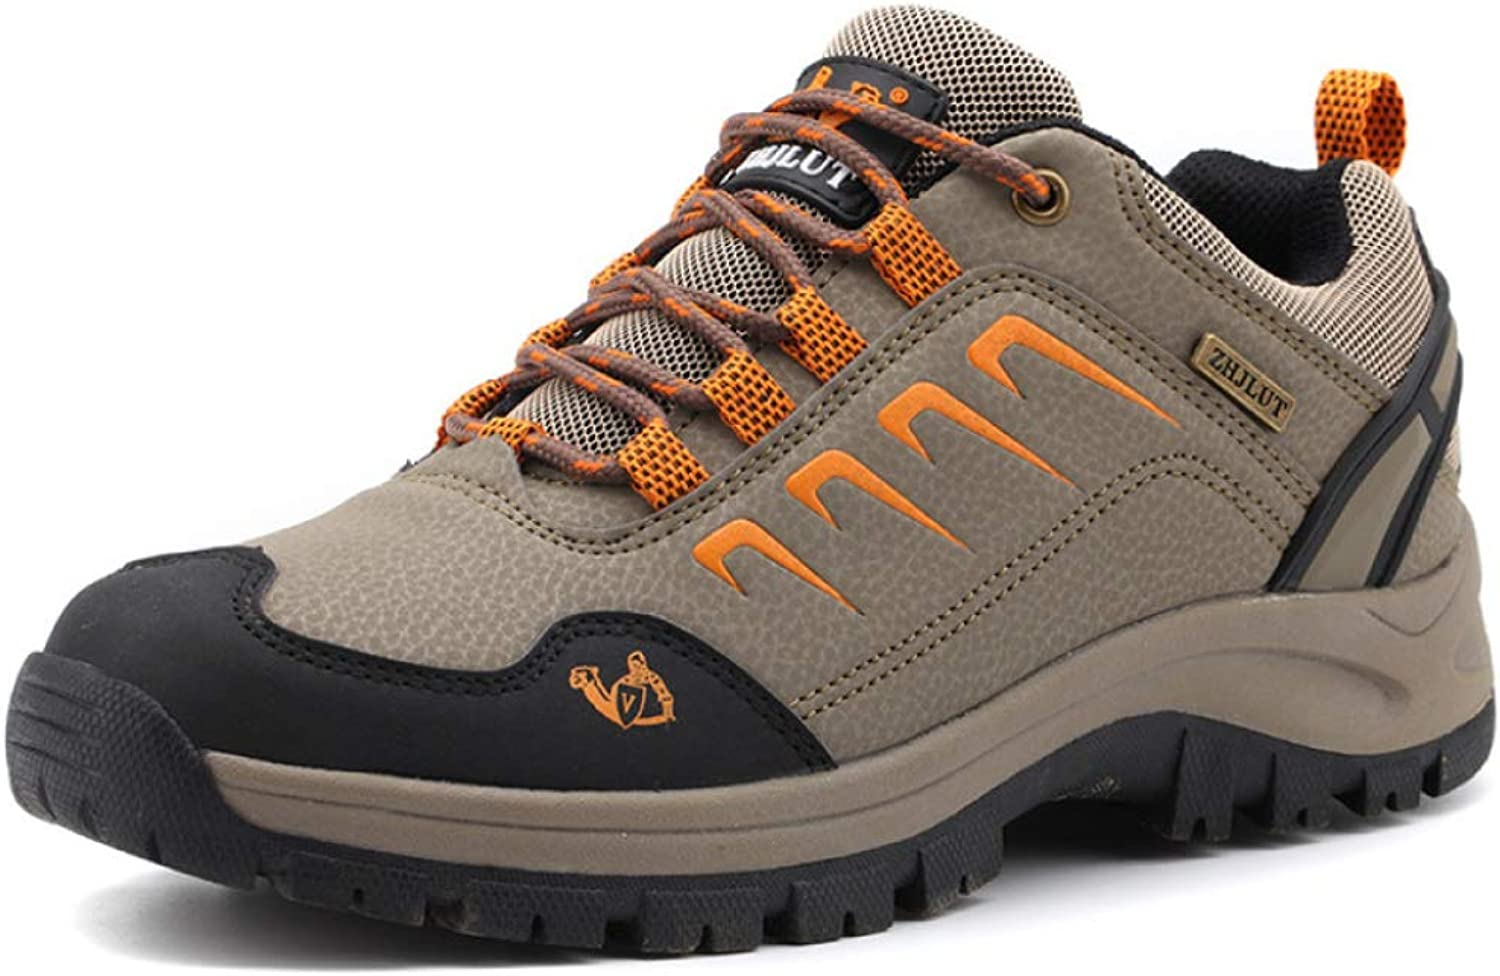 49d768b70d4 DSFGHE Sports Sports Sports shoes Men's Hiking shoes Lightweight ...